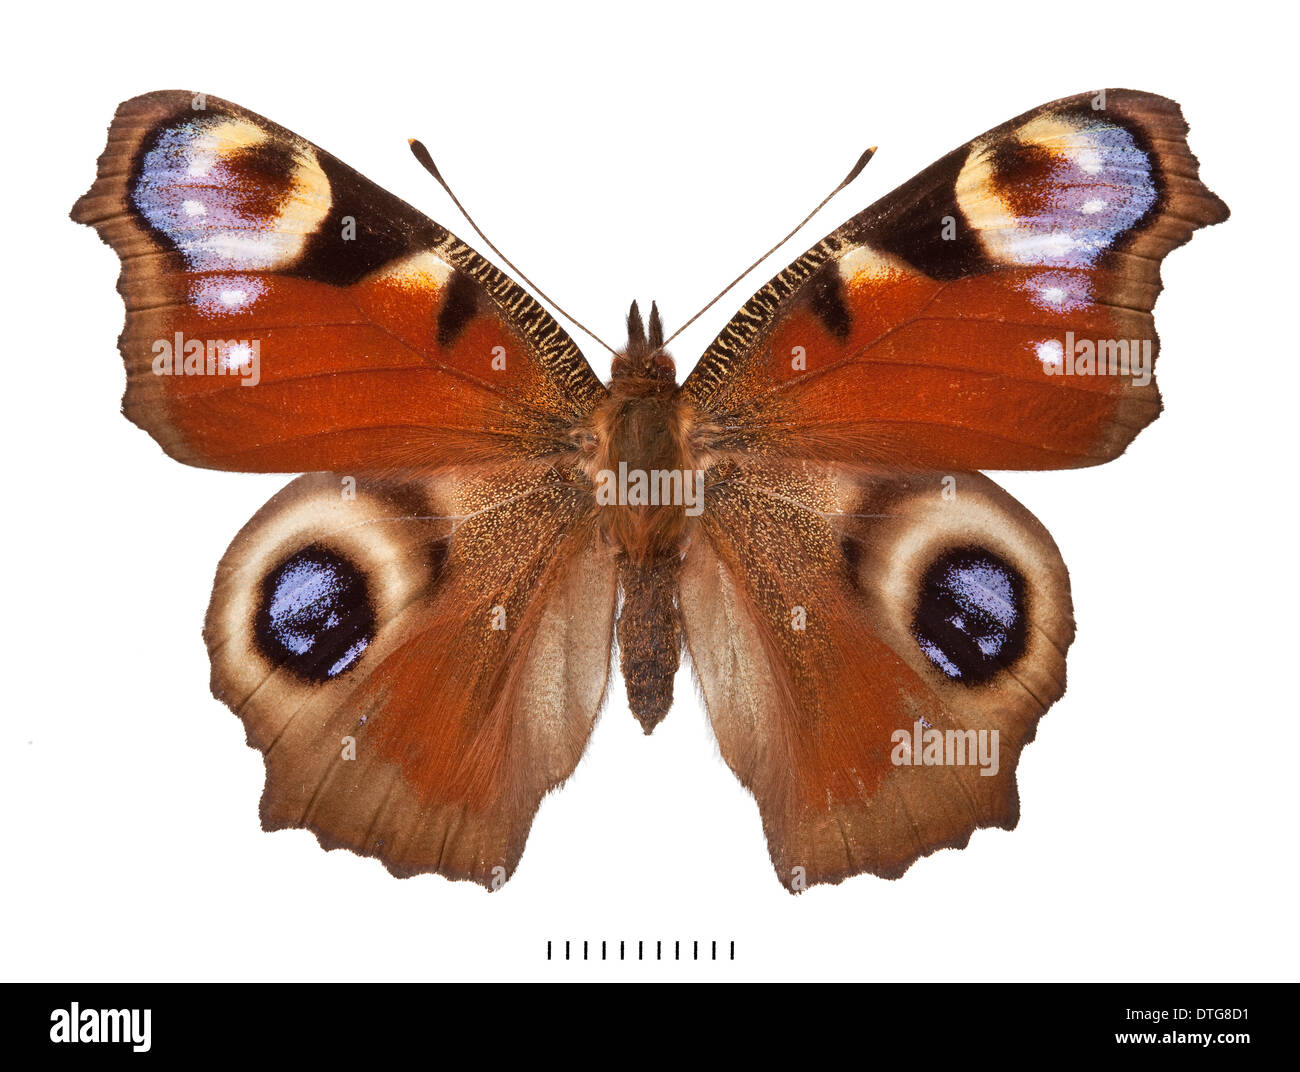 Inachis io, Peacock butterfly - Stock Image